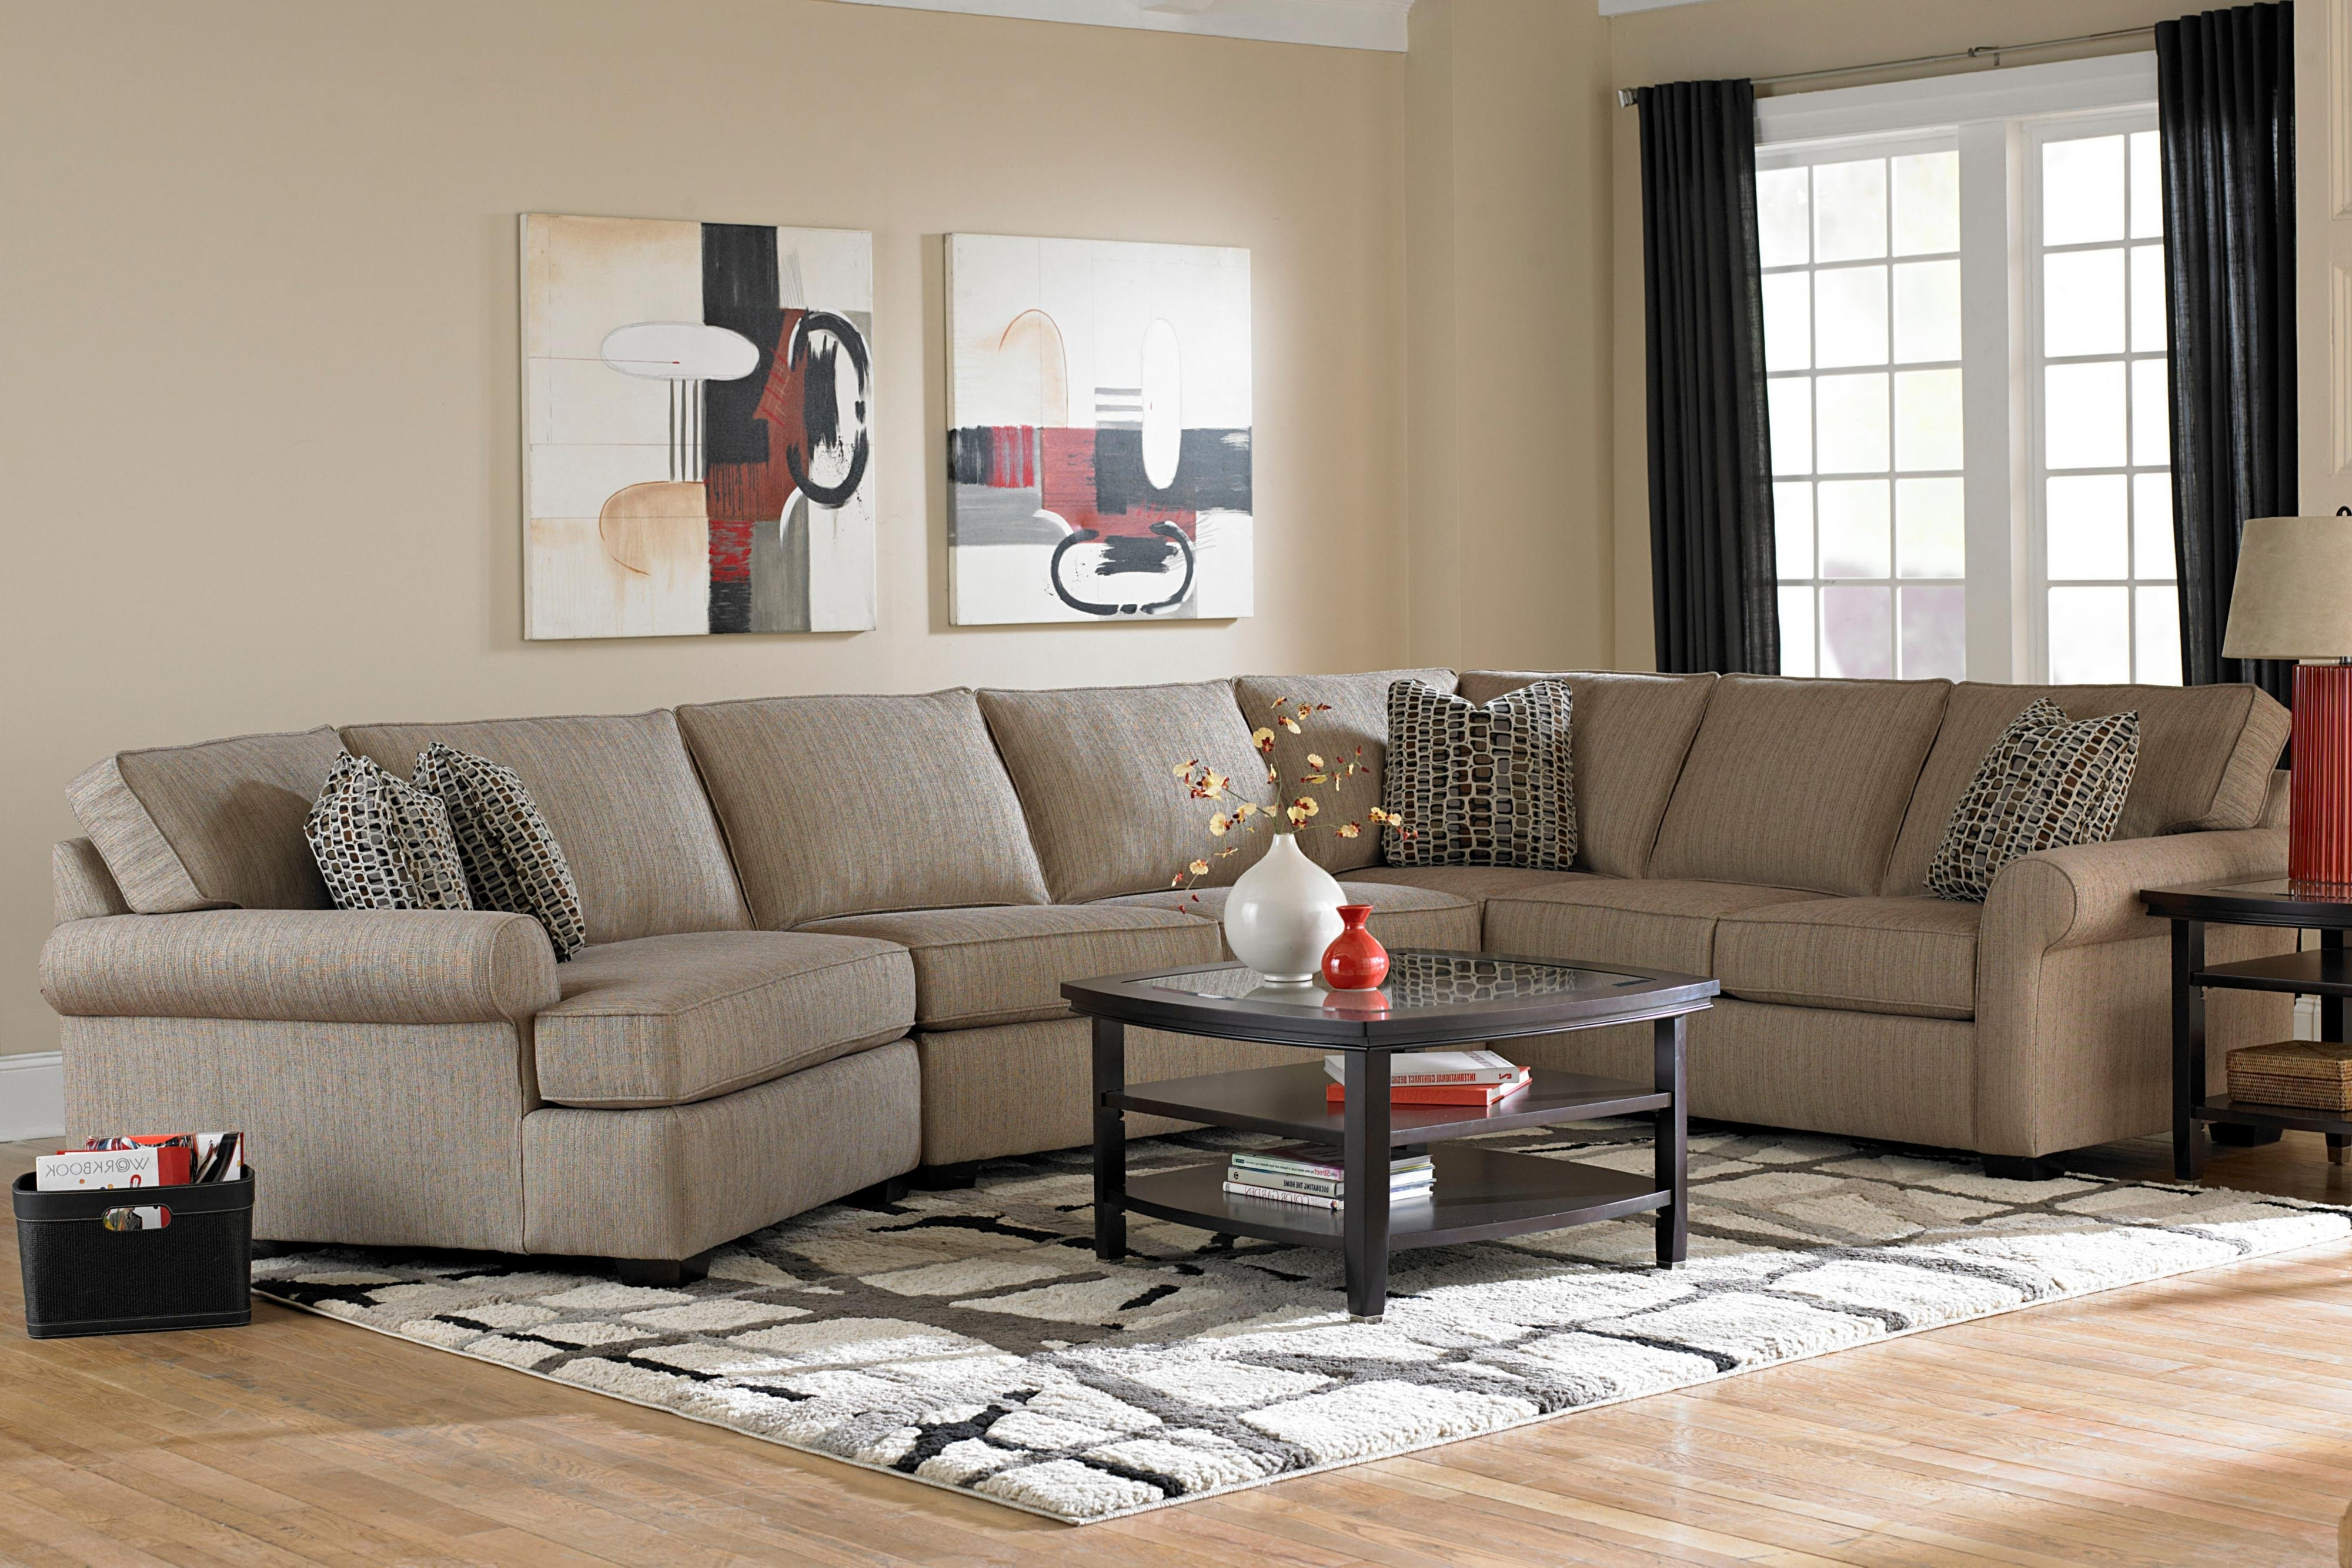 Newest Broyhill Furniture Ethan Transitional Sectional Sofa With Right For Pensacola Fl Sectional Sofas (View 14 of 15)